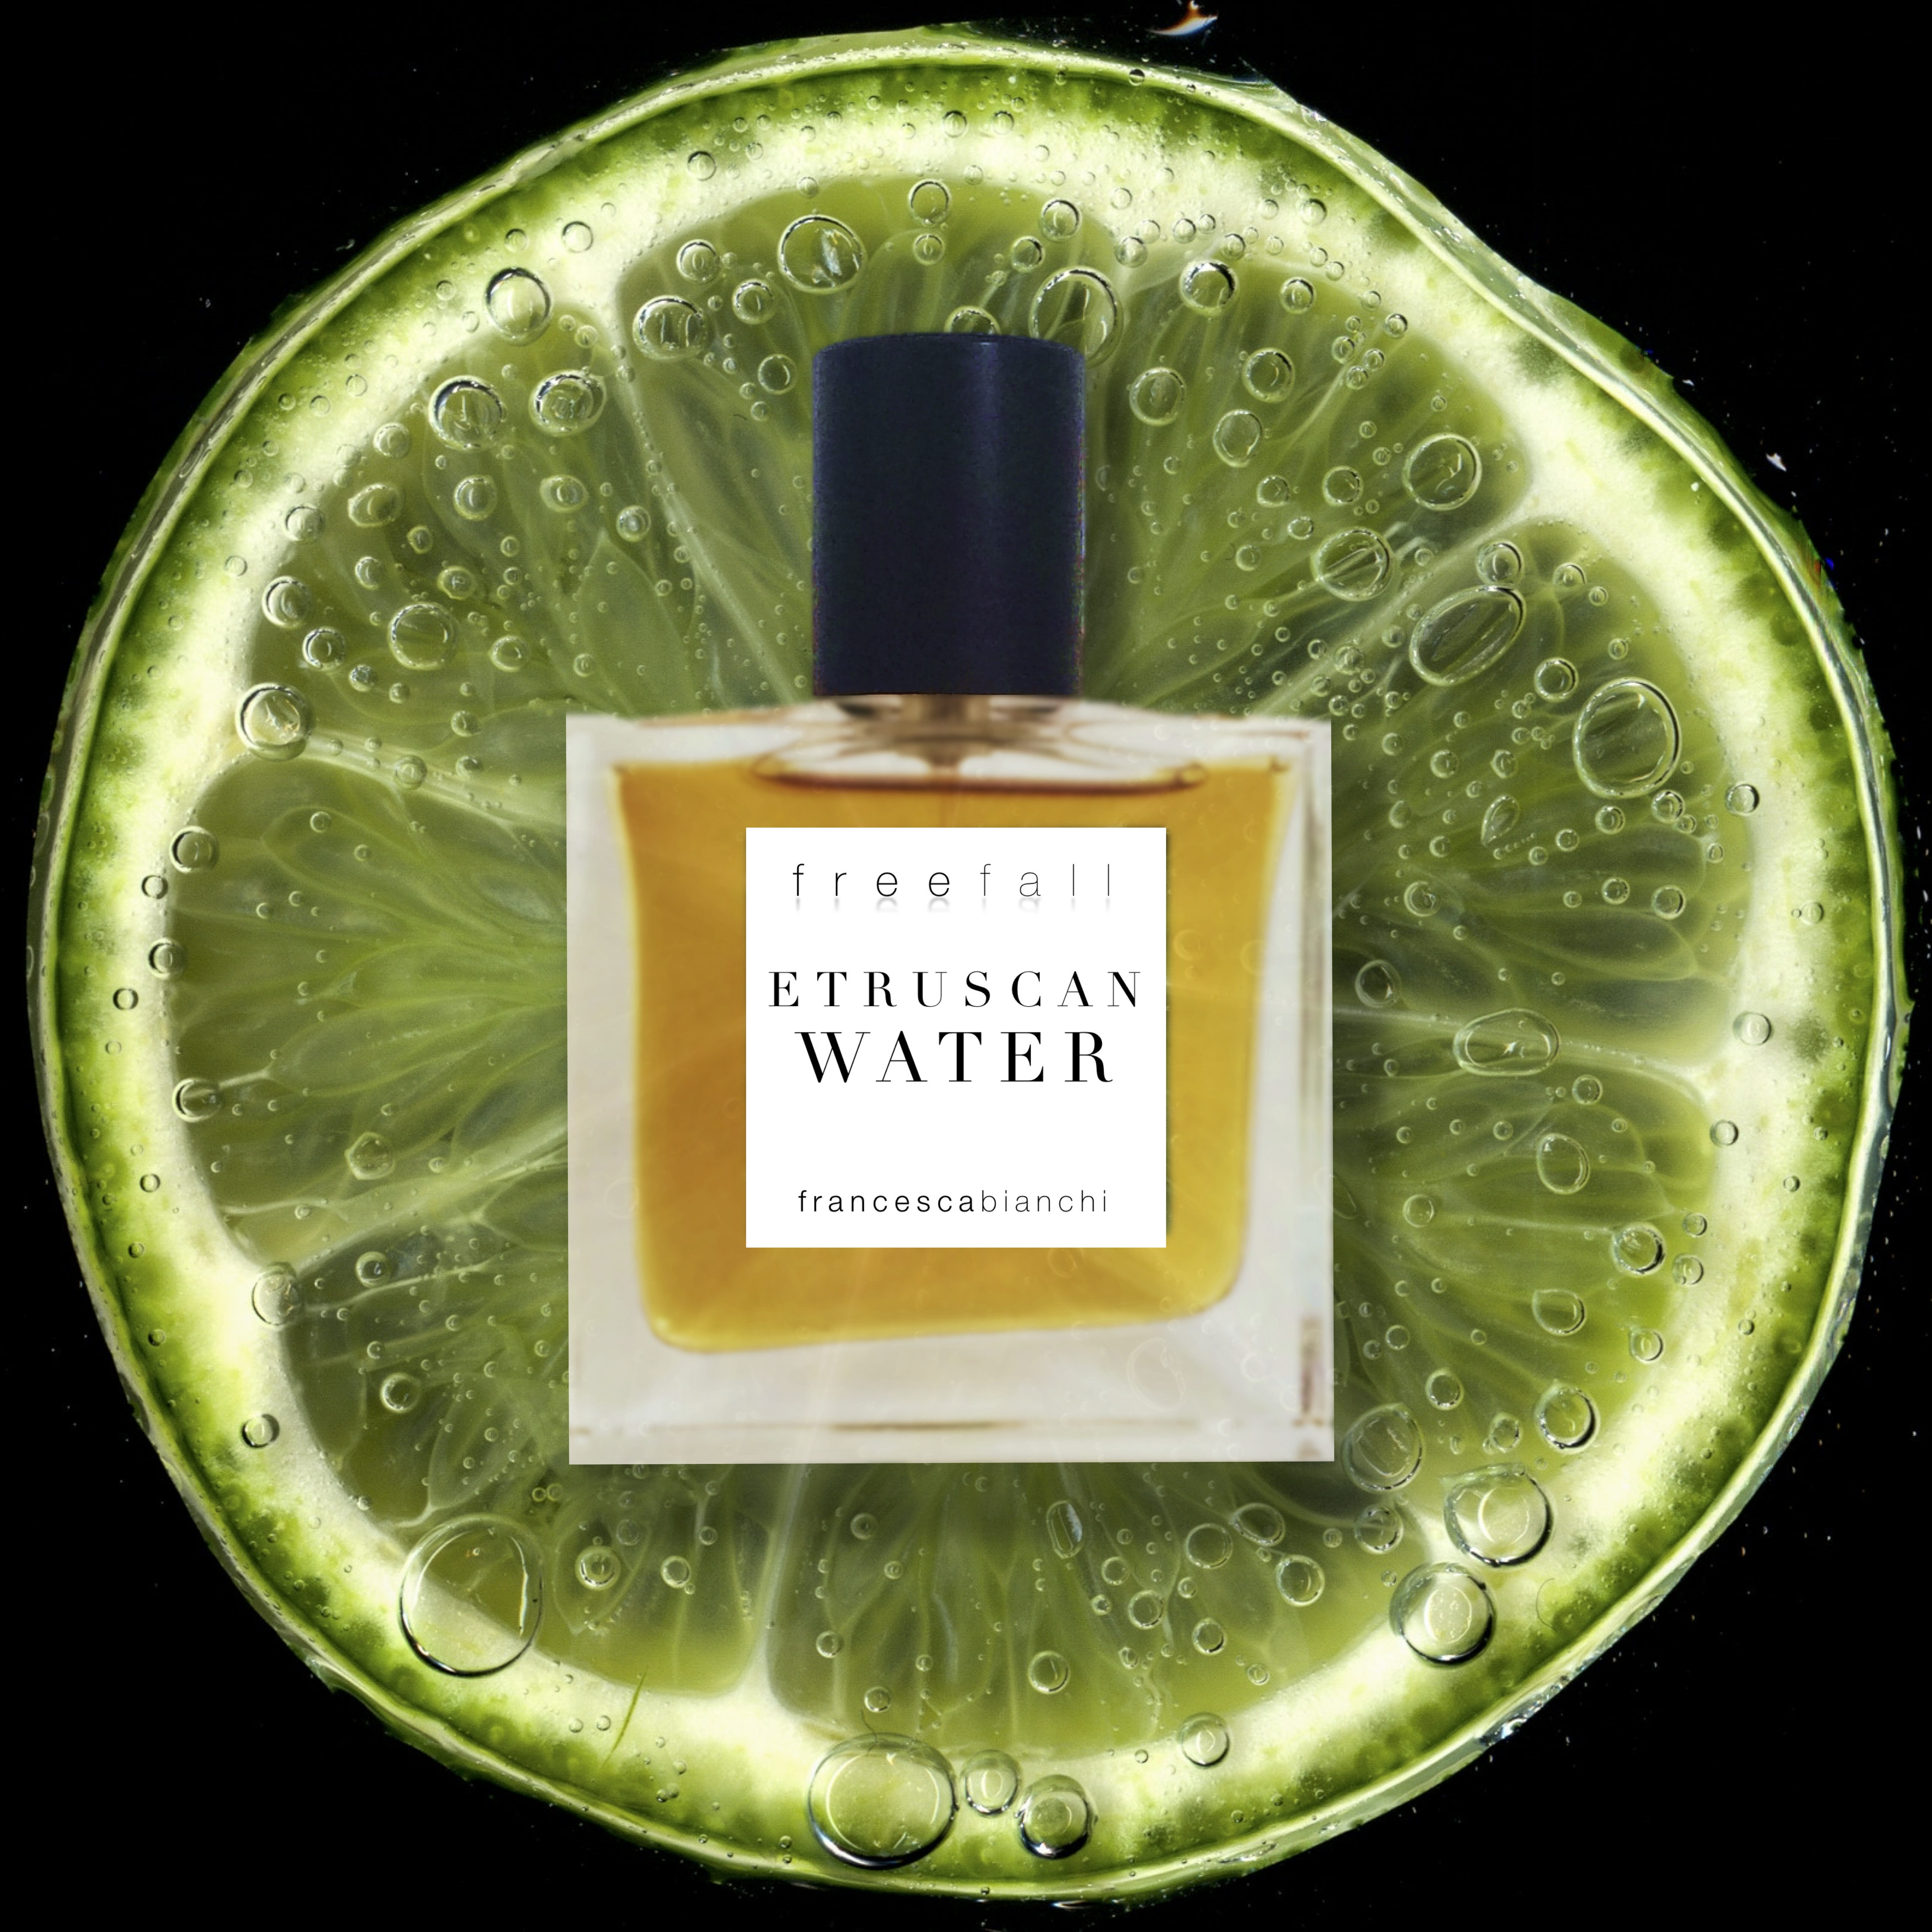 Etruscan water SQUARE 02 | Francesca Bianchi Perfumes